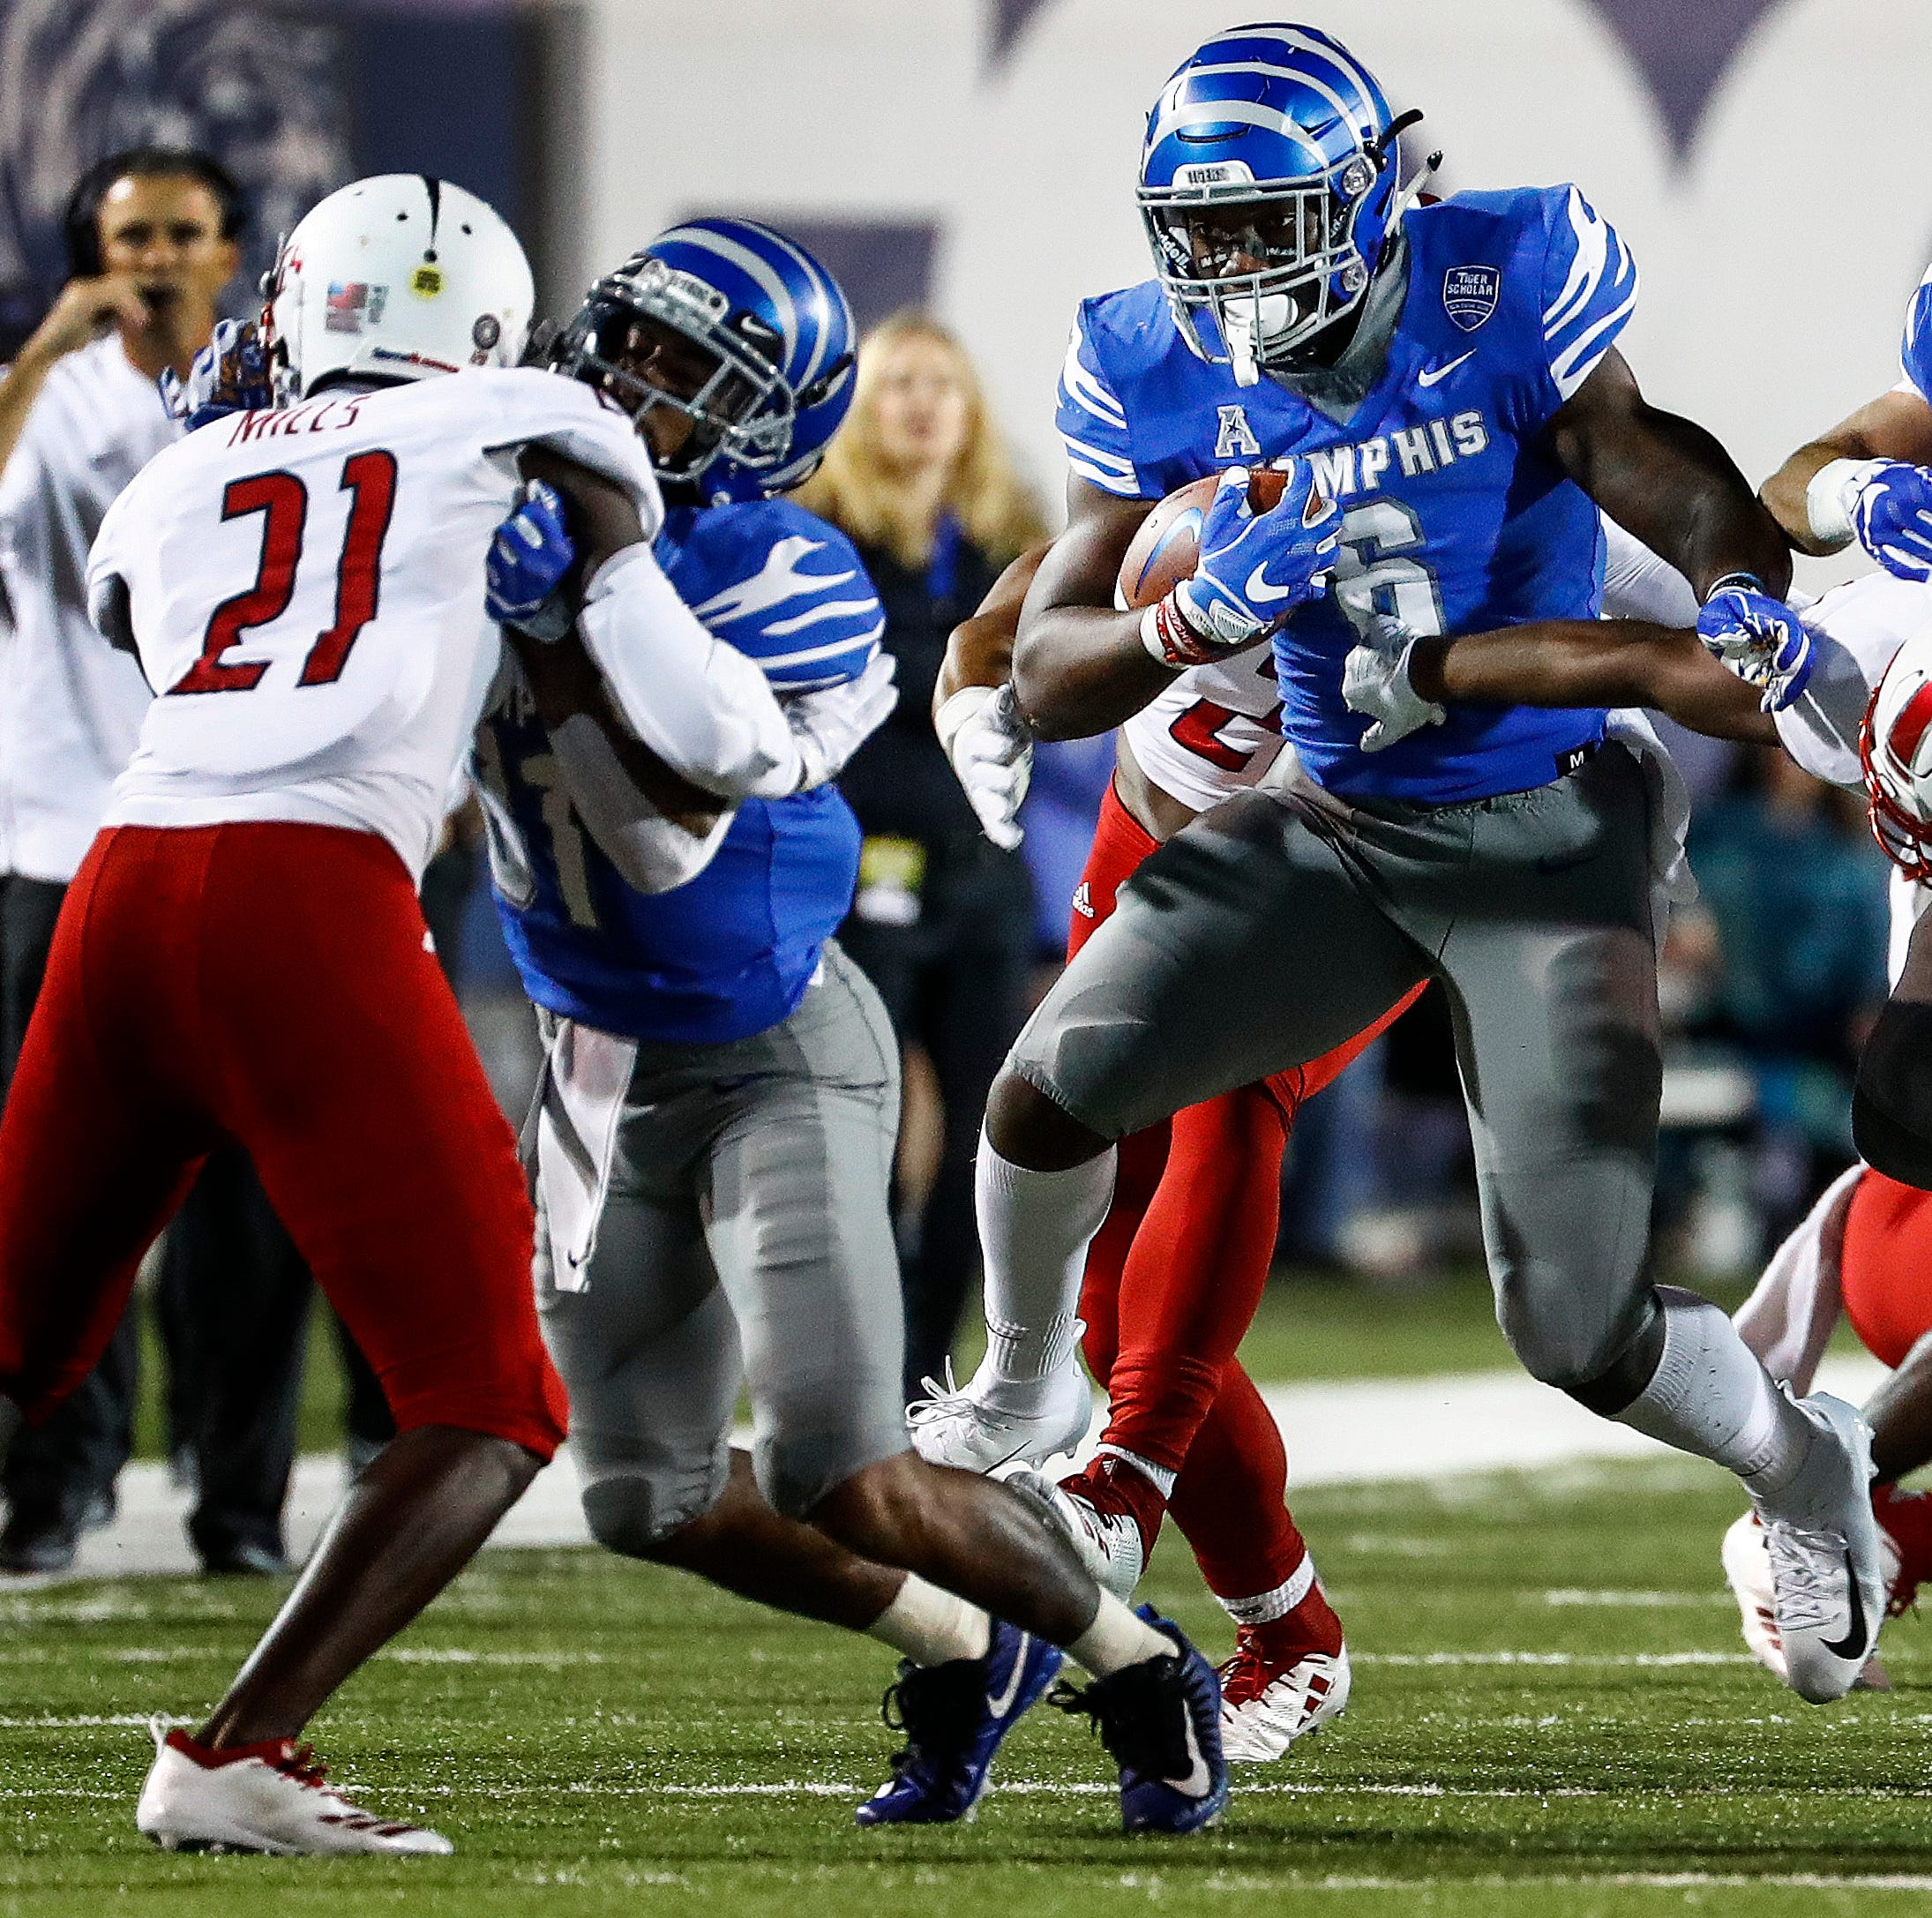 Memphis football gets a scare from South Alabama, but maybe the Tigers needed it